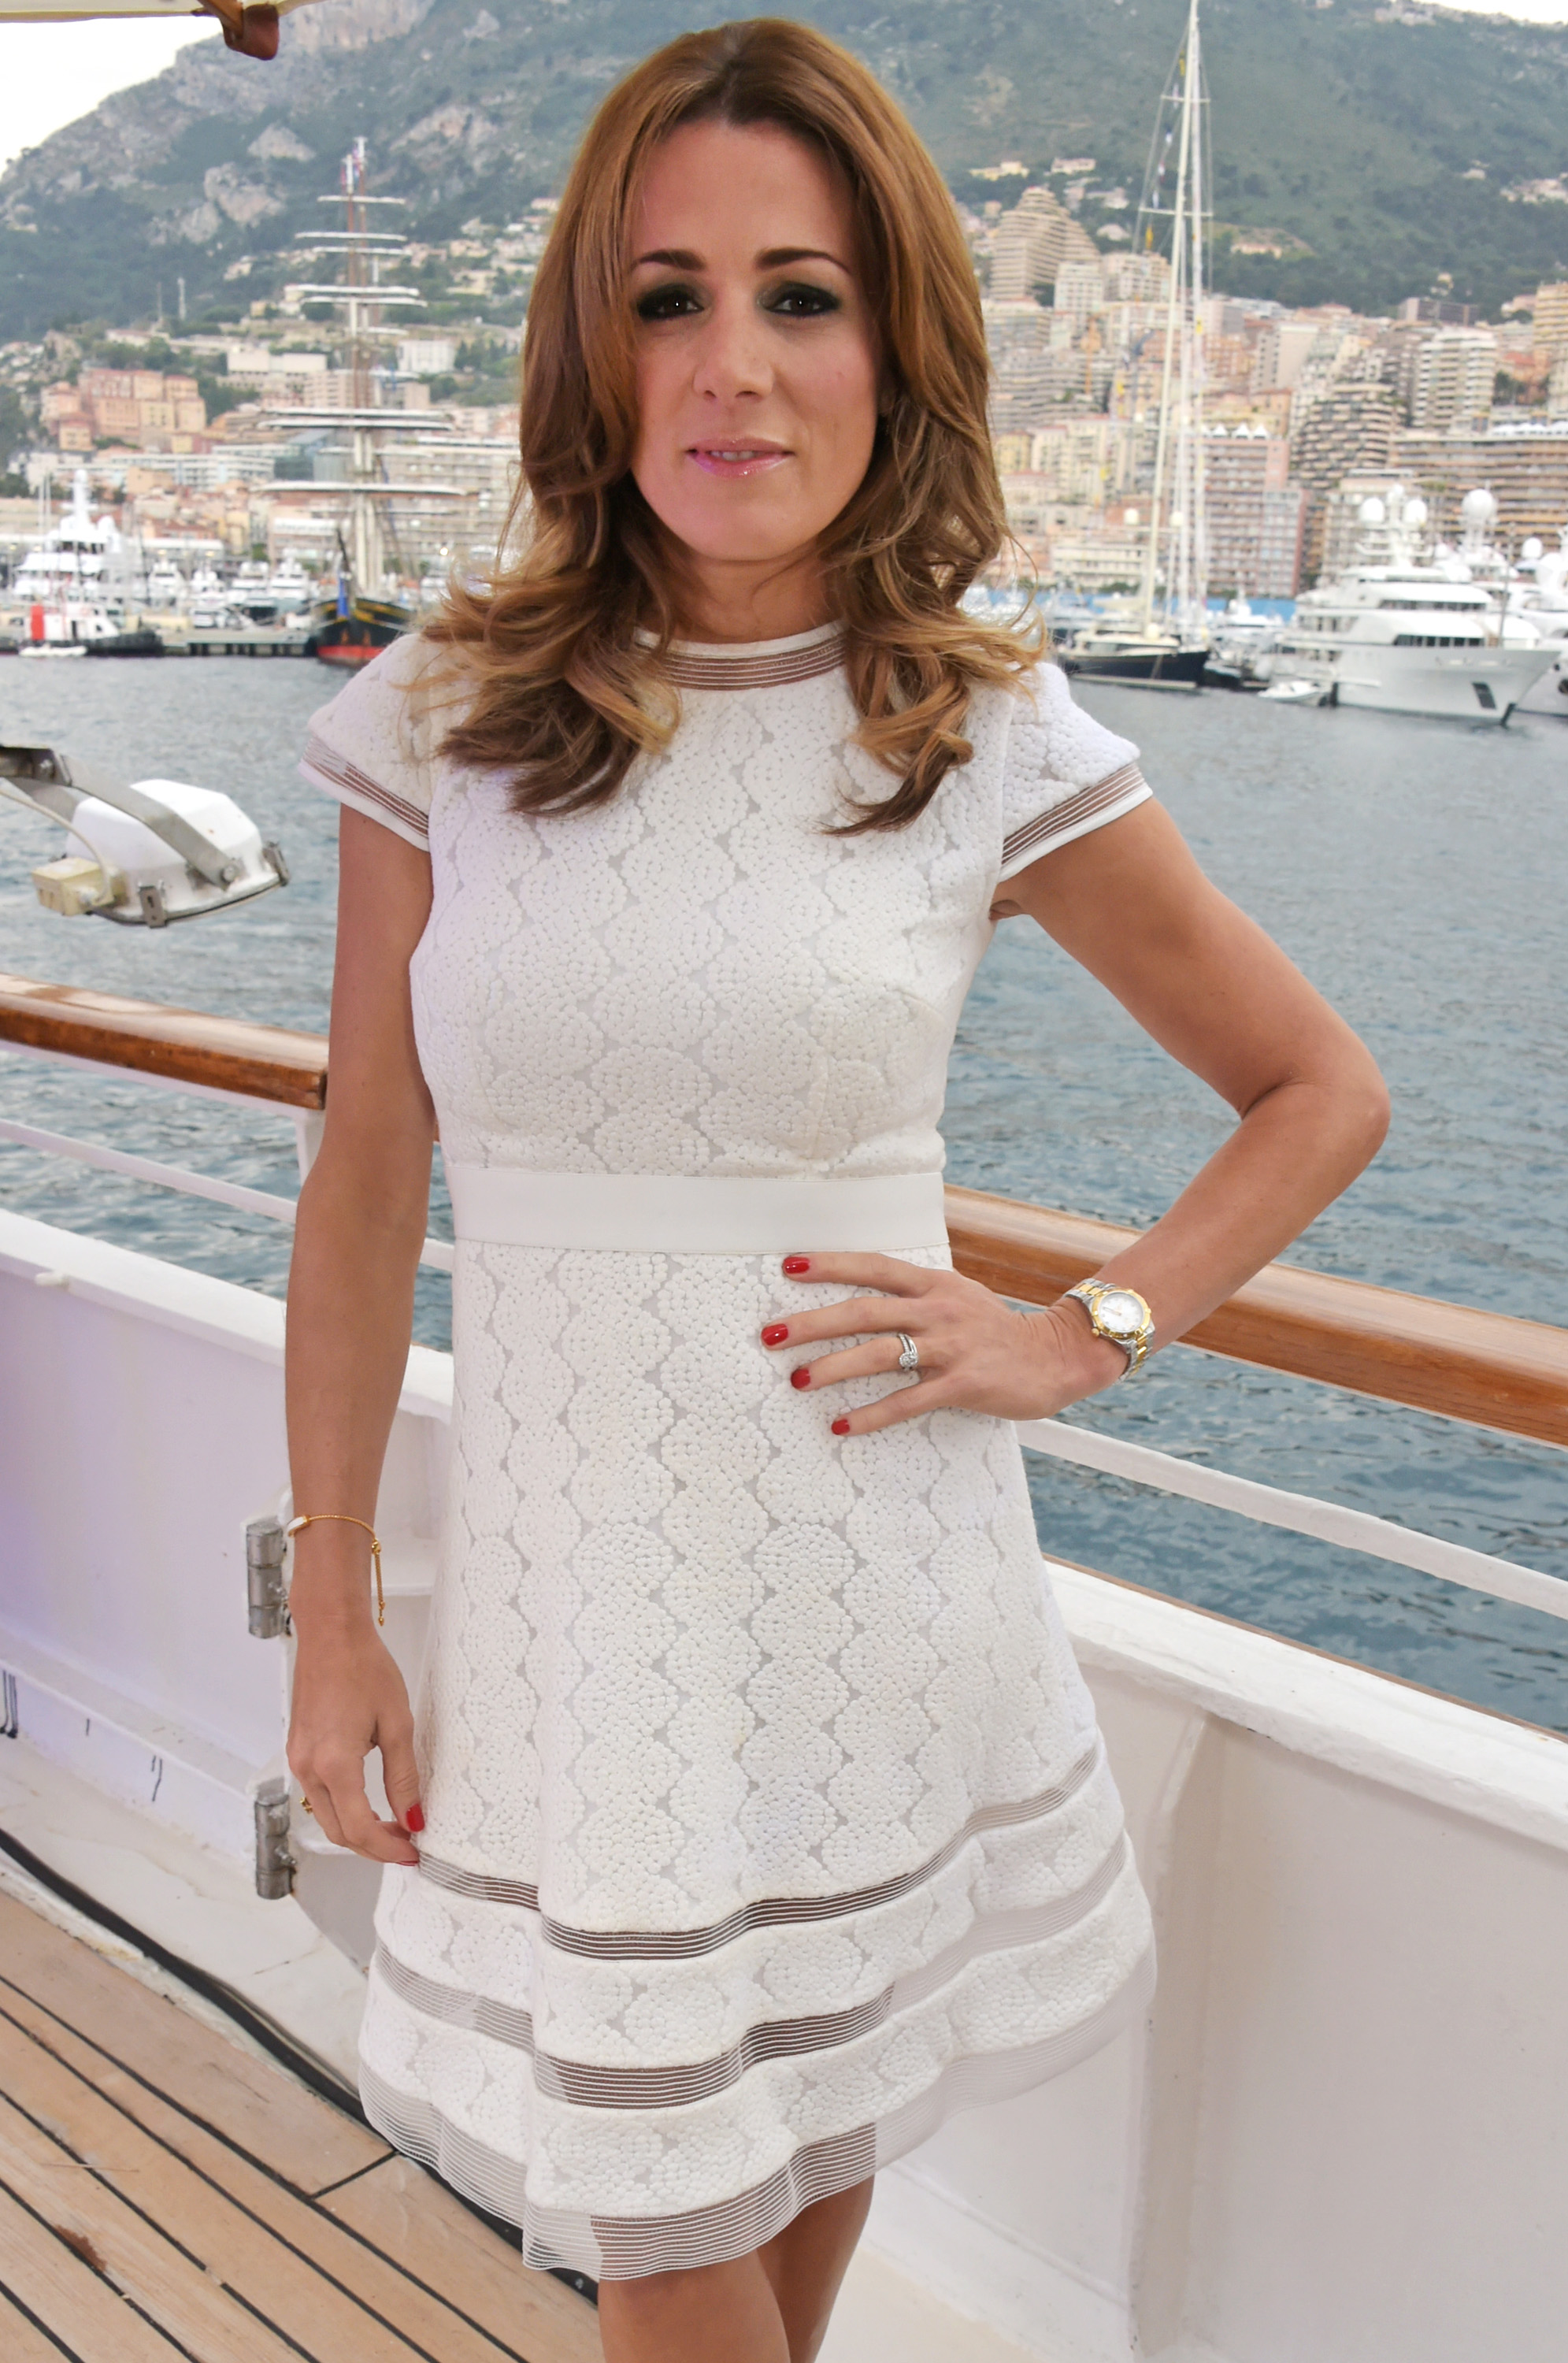 MONACO - MAY 23:  Natalie Pinkham attends the TAG Heuer Monaco Party on May 23, 2015 in Monaco, Monaco.  (Photo by David M. Benett/Getty Images for TAG Heuer) *** Local Caption *** Natalie Pinkham